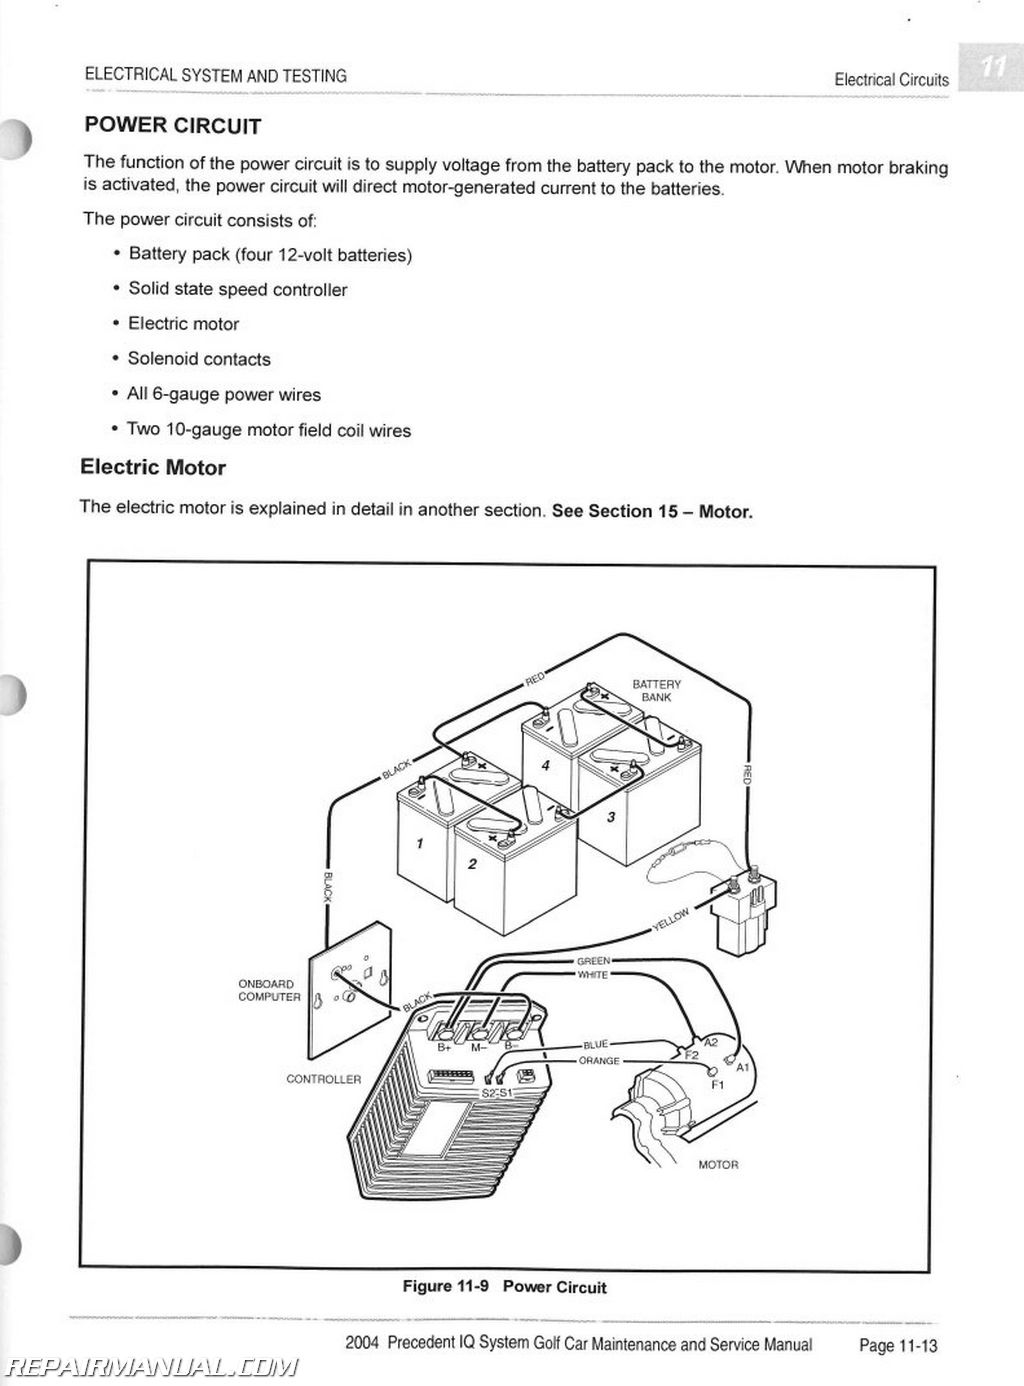 wiring diagram club car precedent the wiring diagram club car precedent wiring diagram katinabags wiring diagram